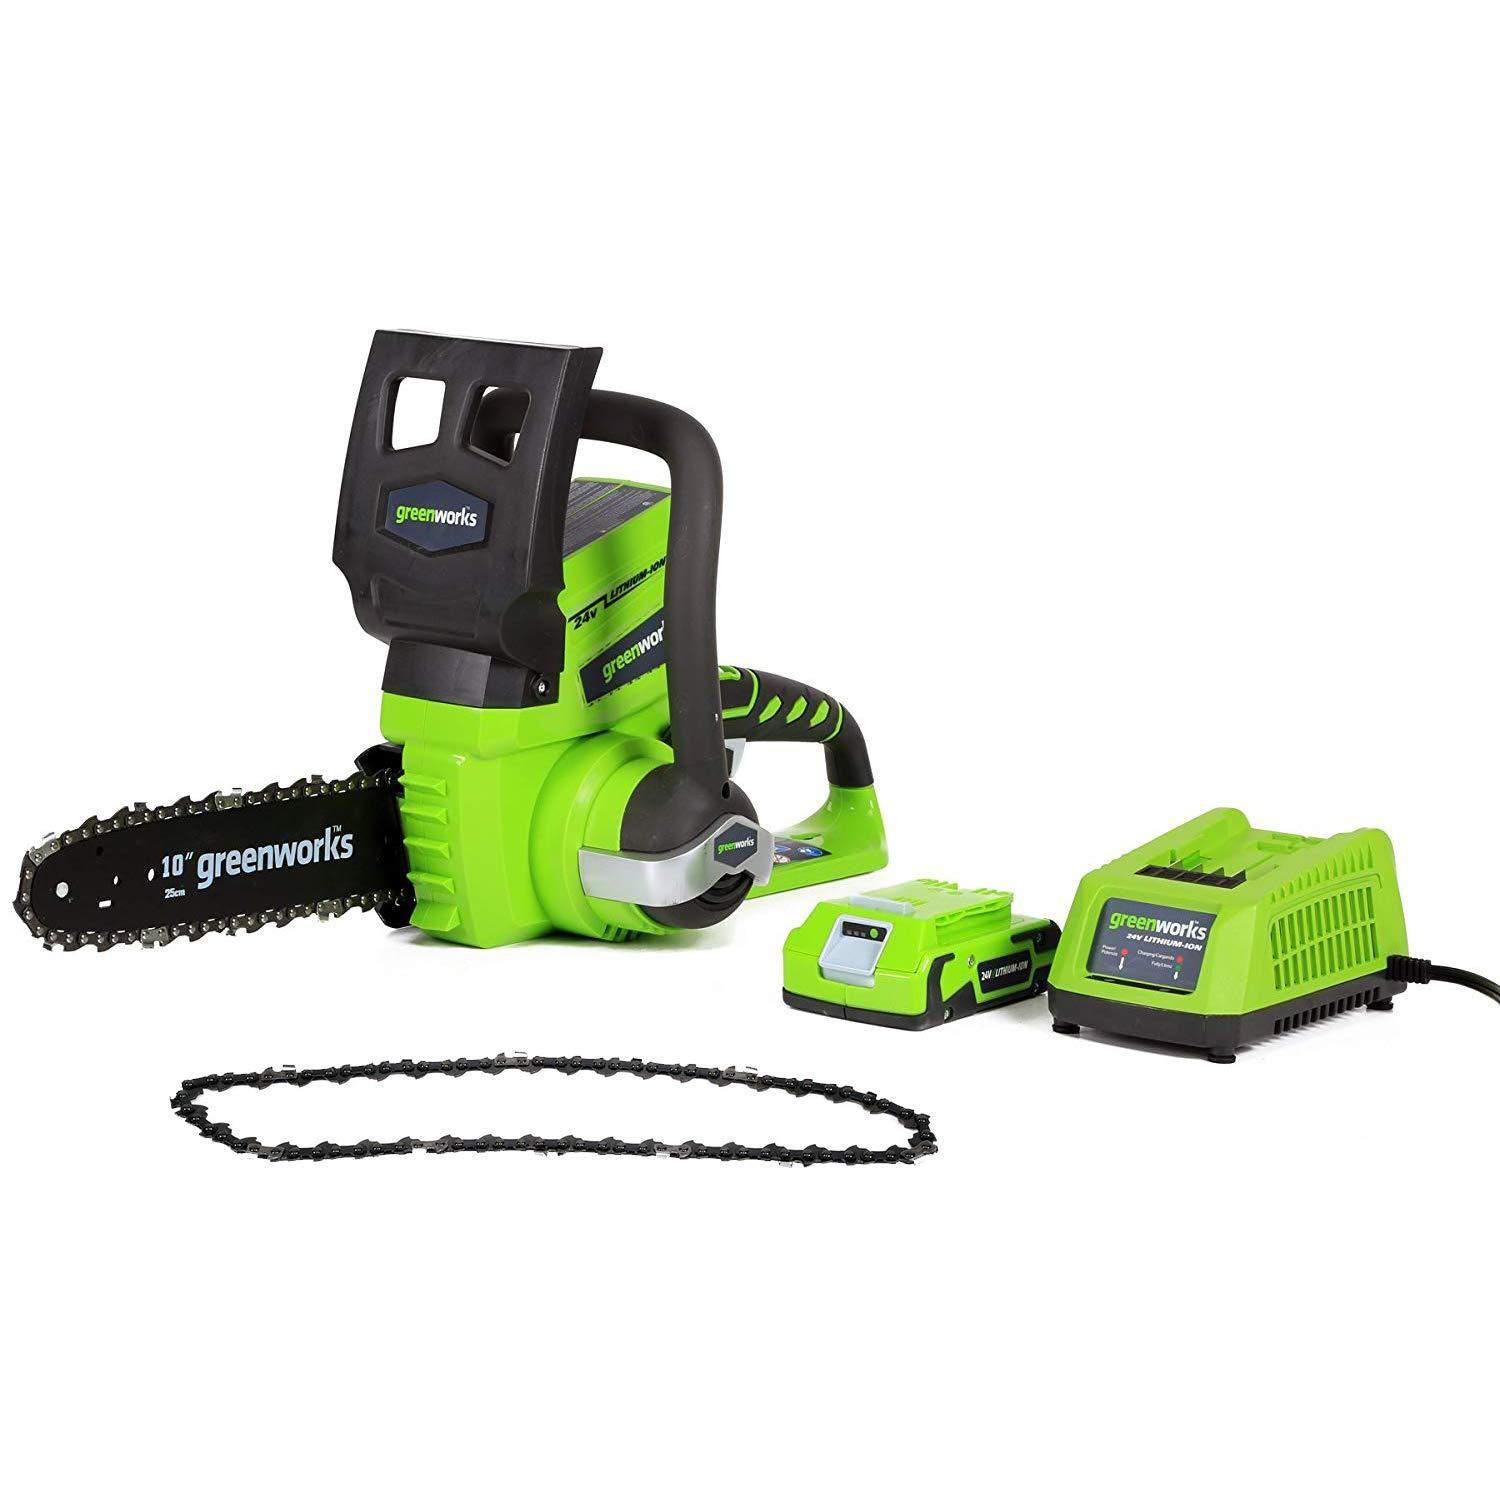 """Greenworks 10"""" 24V Cordless Chainsaw w/ Extra Chain, 2Ah Battery & Charger"""